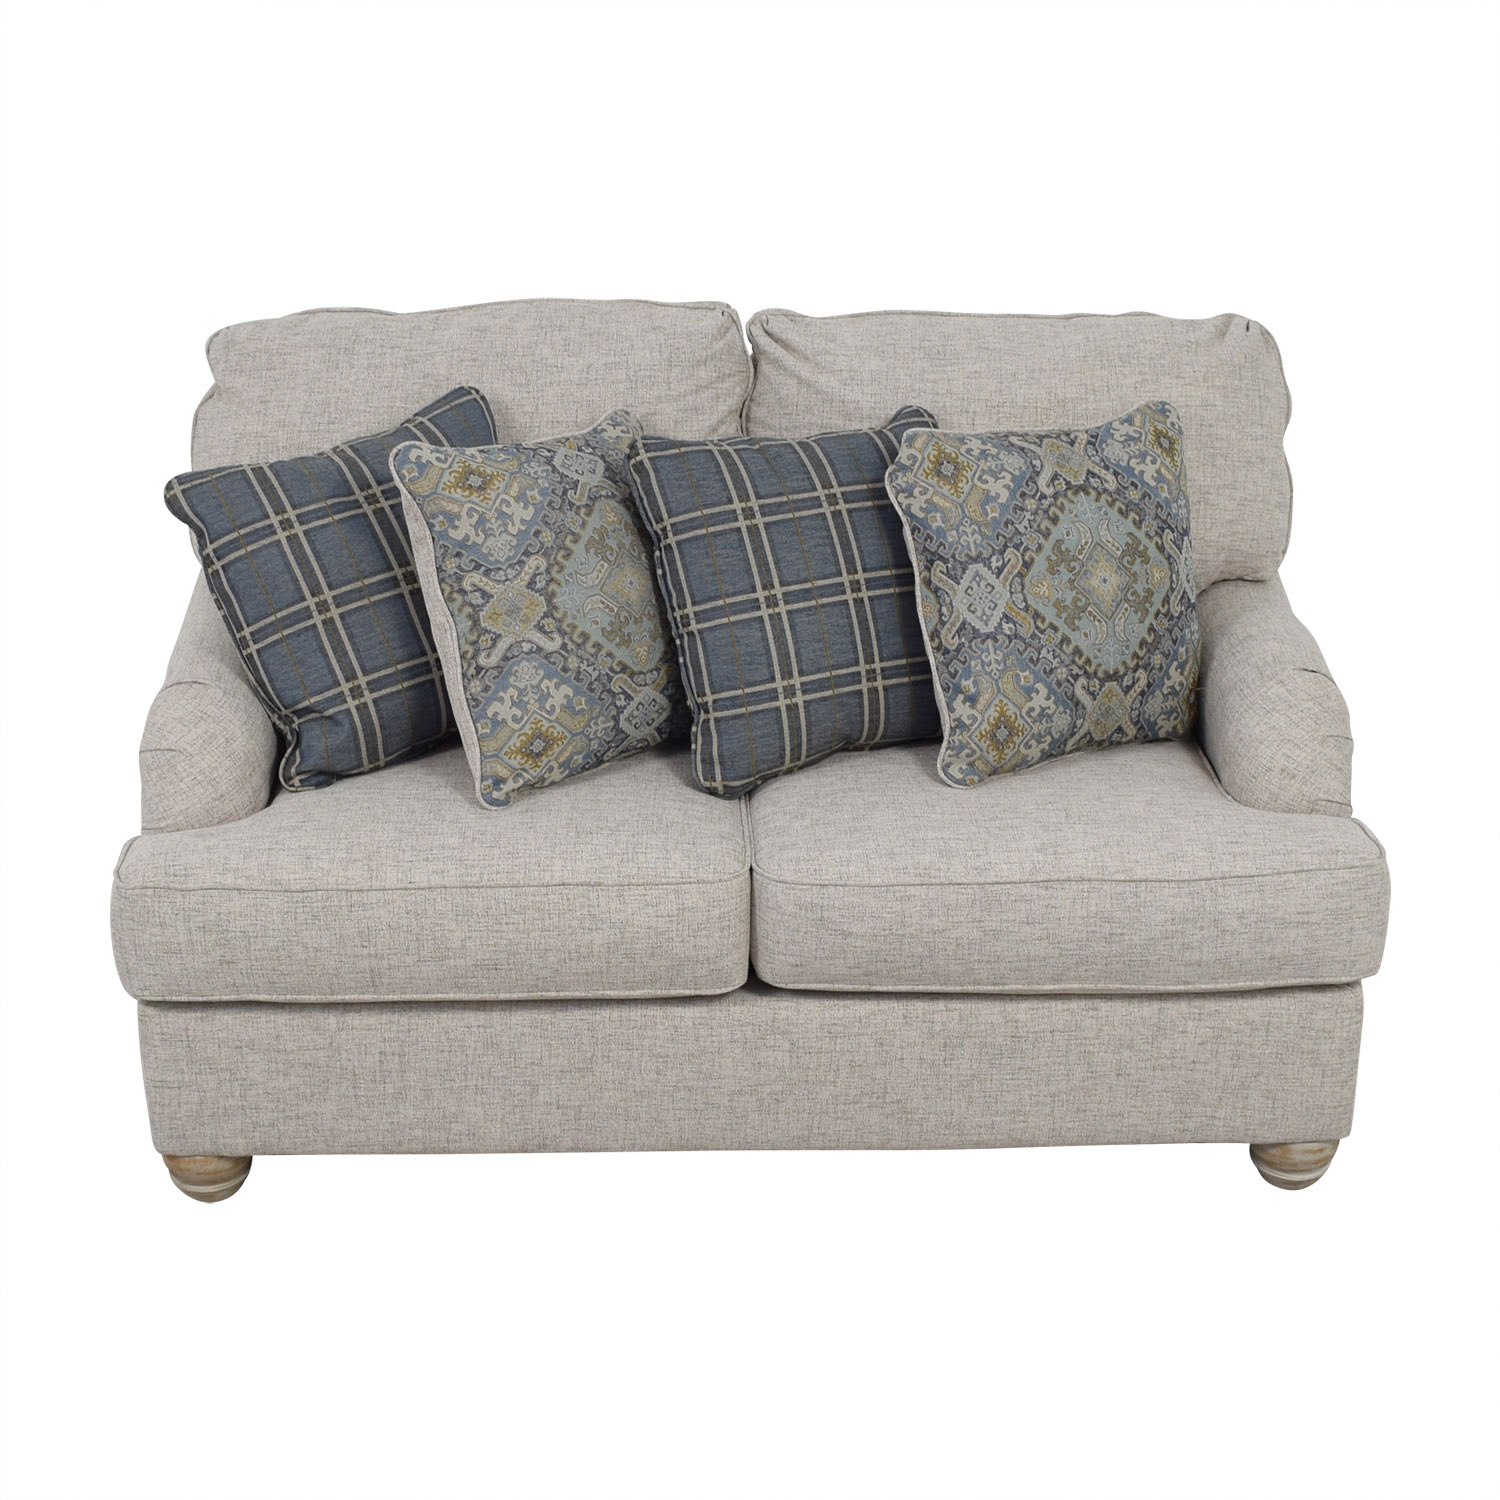 Benchcraft Sofa Ashley Review Home Co